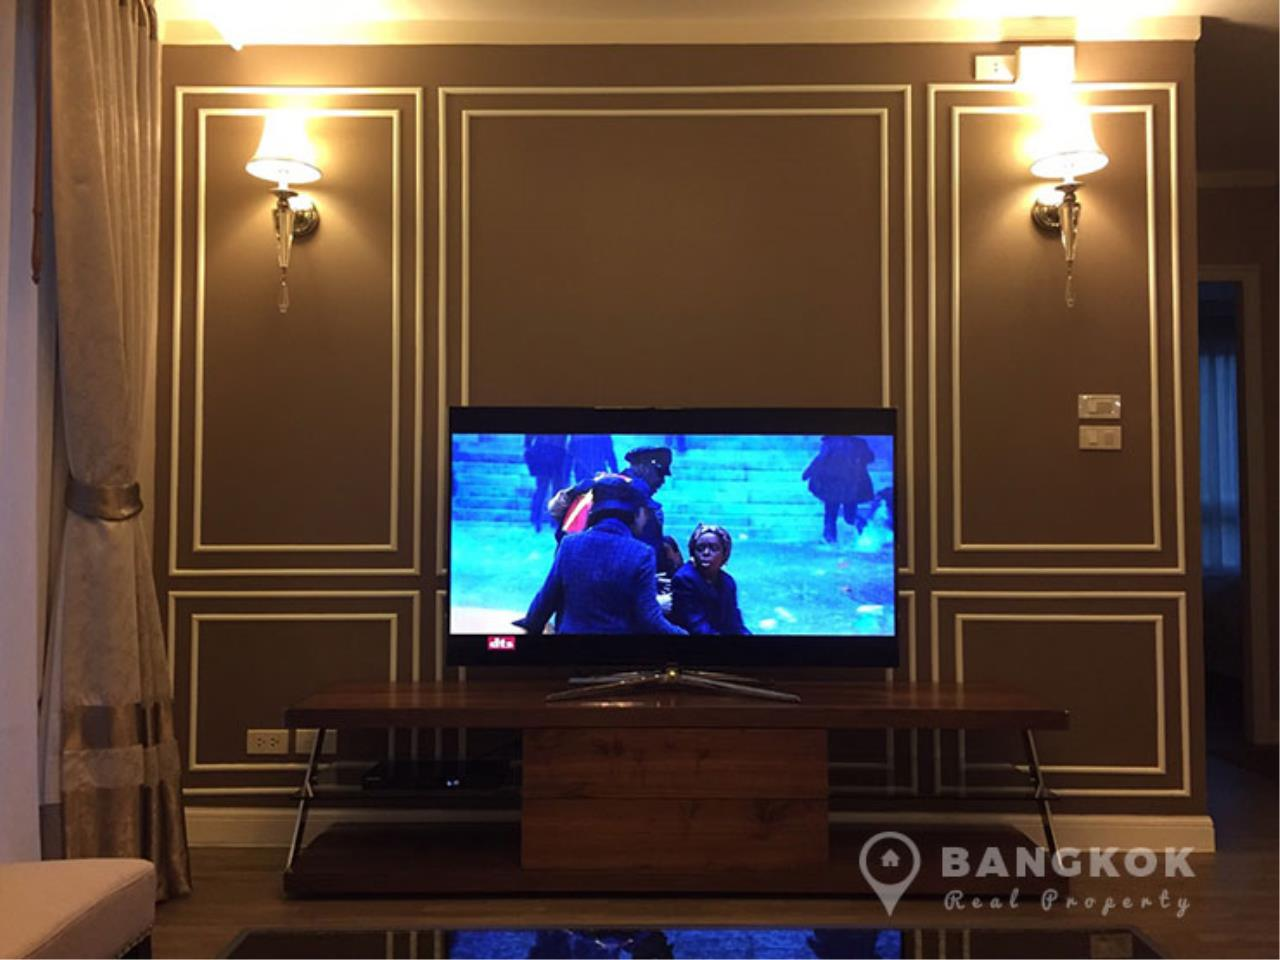 Bangkok Real Property Agency's Baan Siri Yenakard | Spacious Renovated 2 Bed 2 Bath near MRT  3